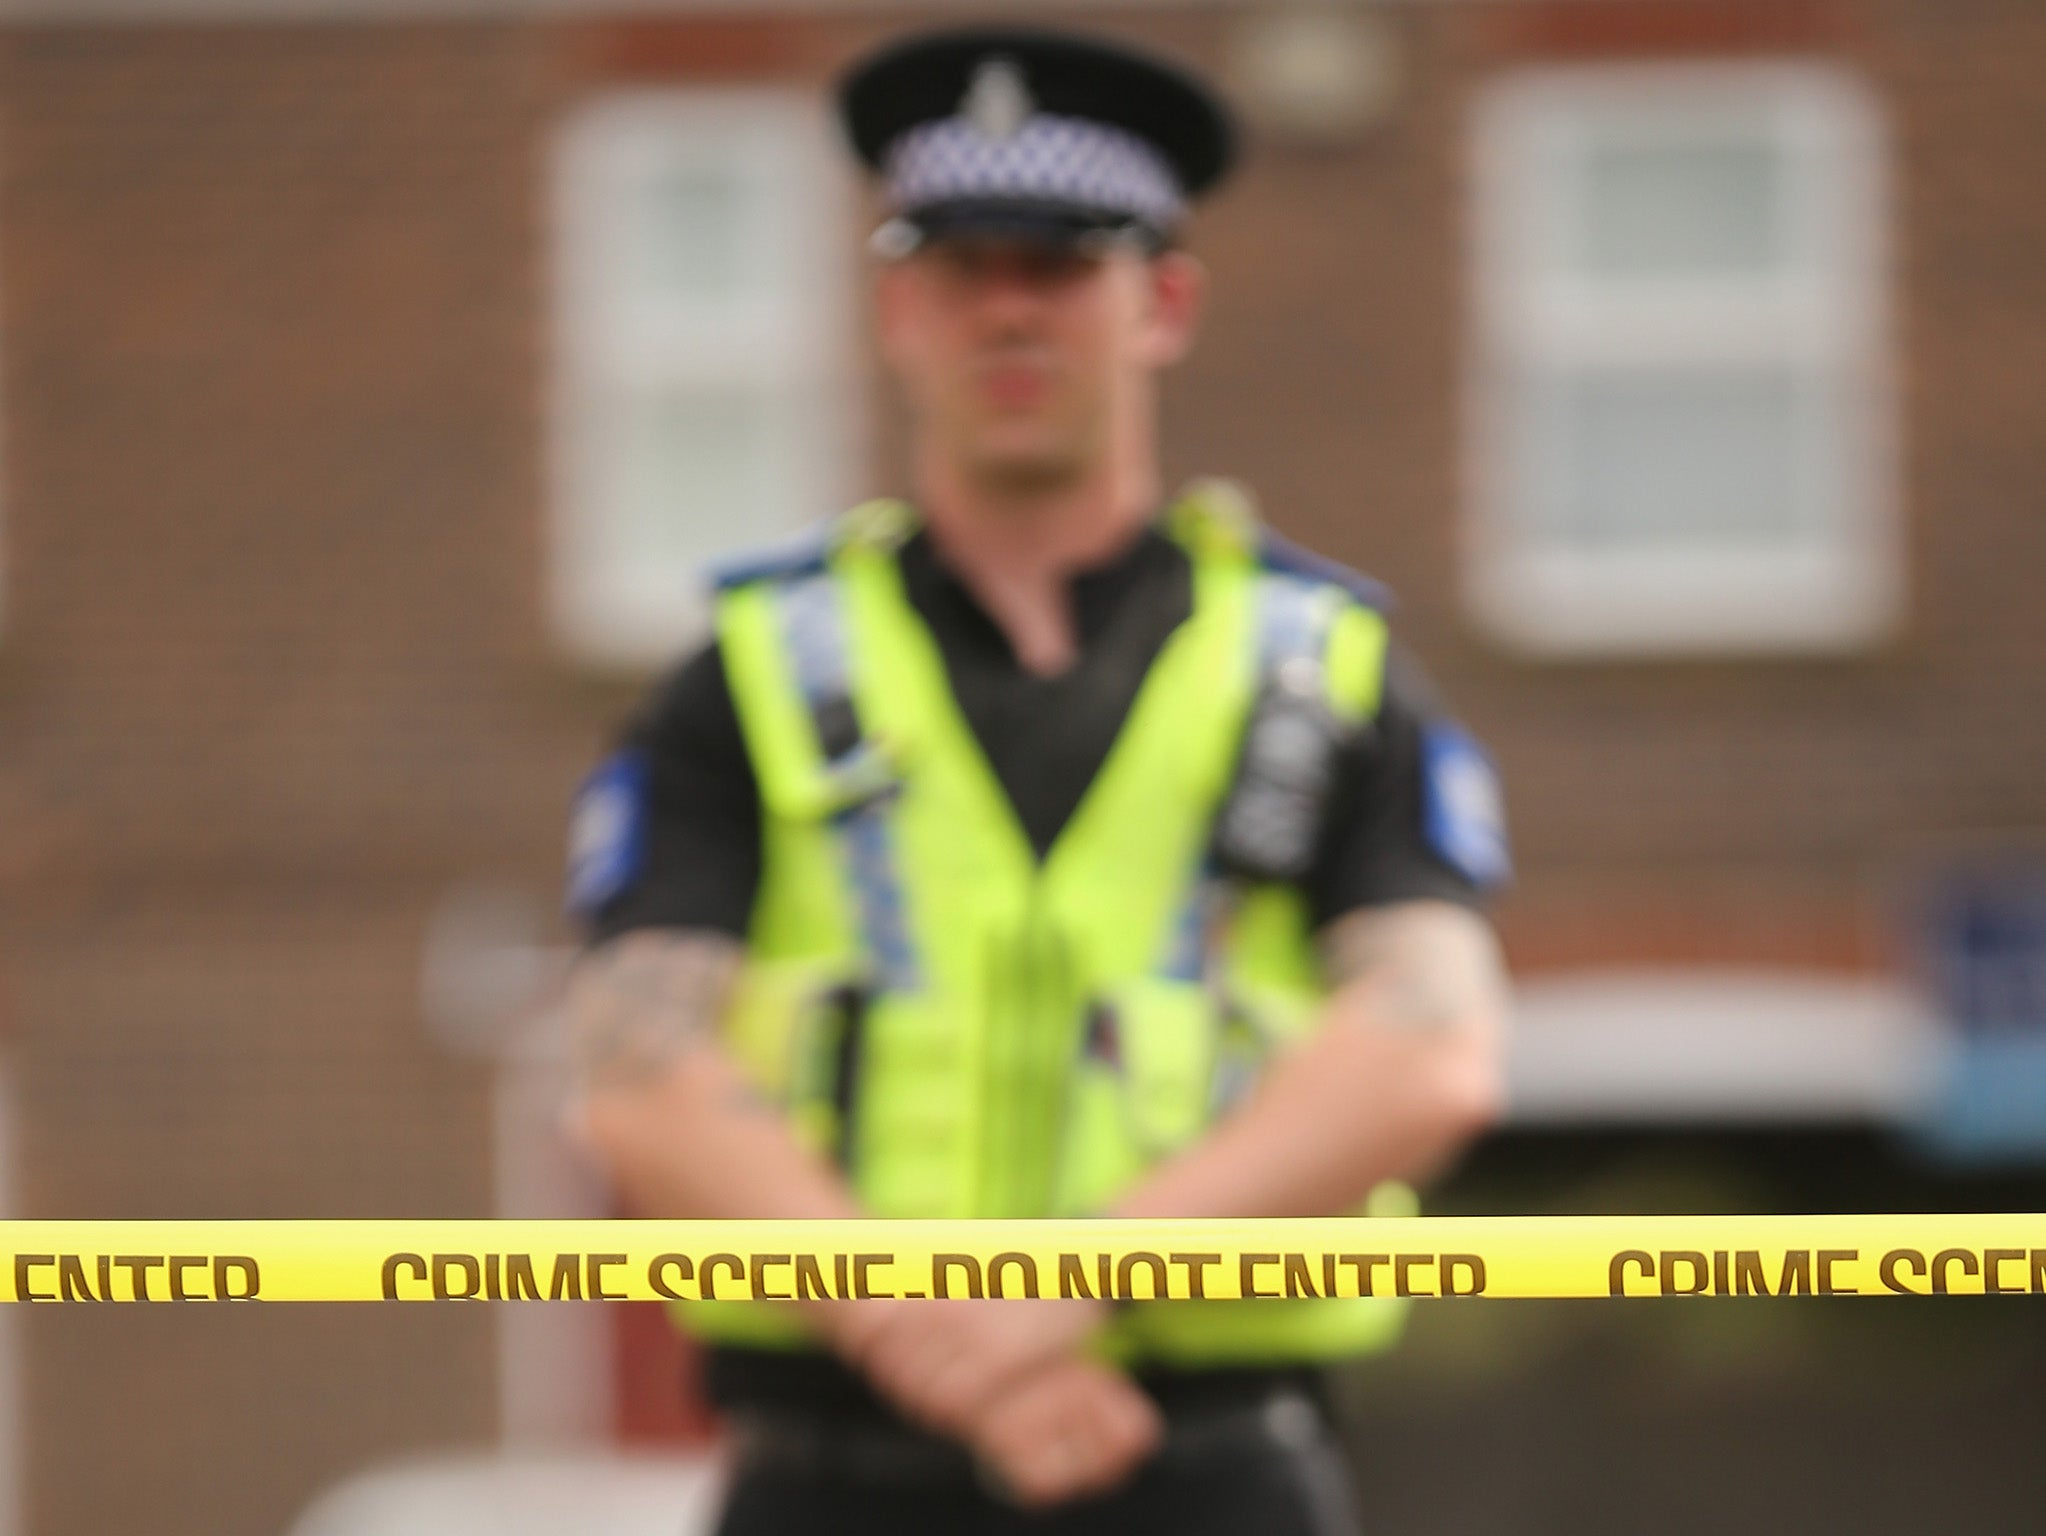 Baby's body found by plumber in Grimsby house garden drain | The Independentindependent_brand_ident_LOGOUntitled